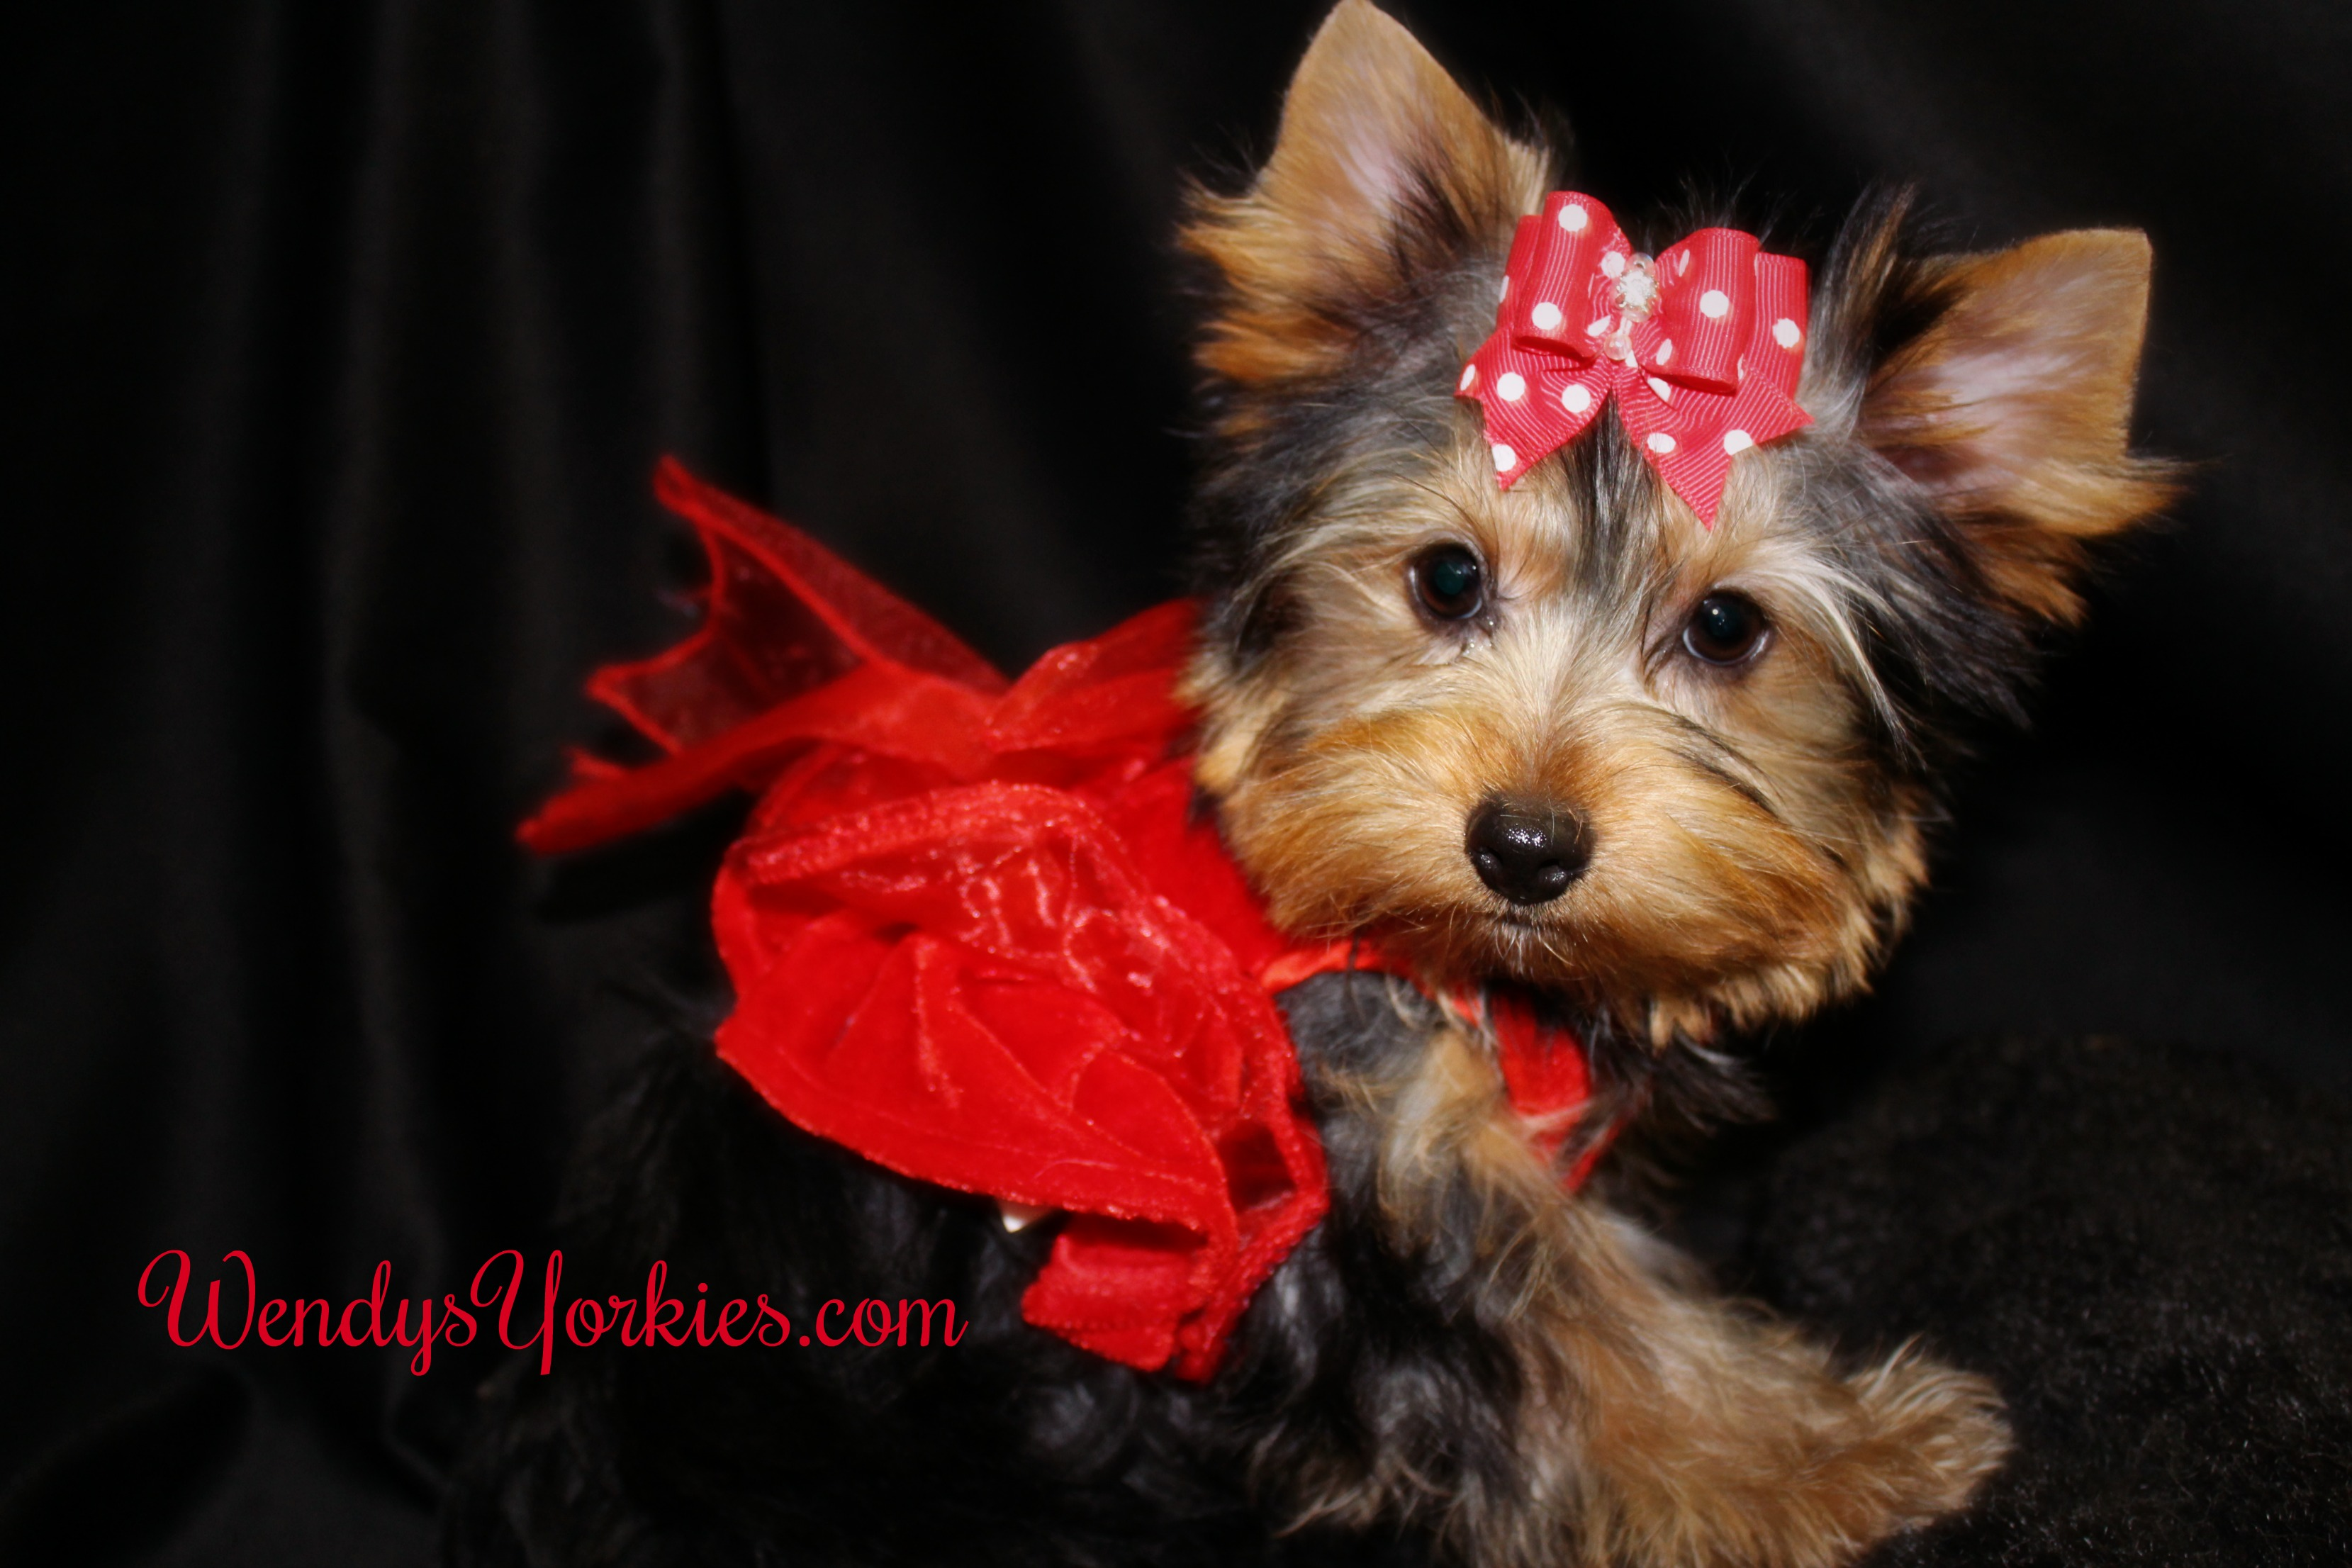 Toy Yorkie puppy for sale, WEndysYorkies.com, Holly